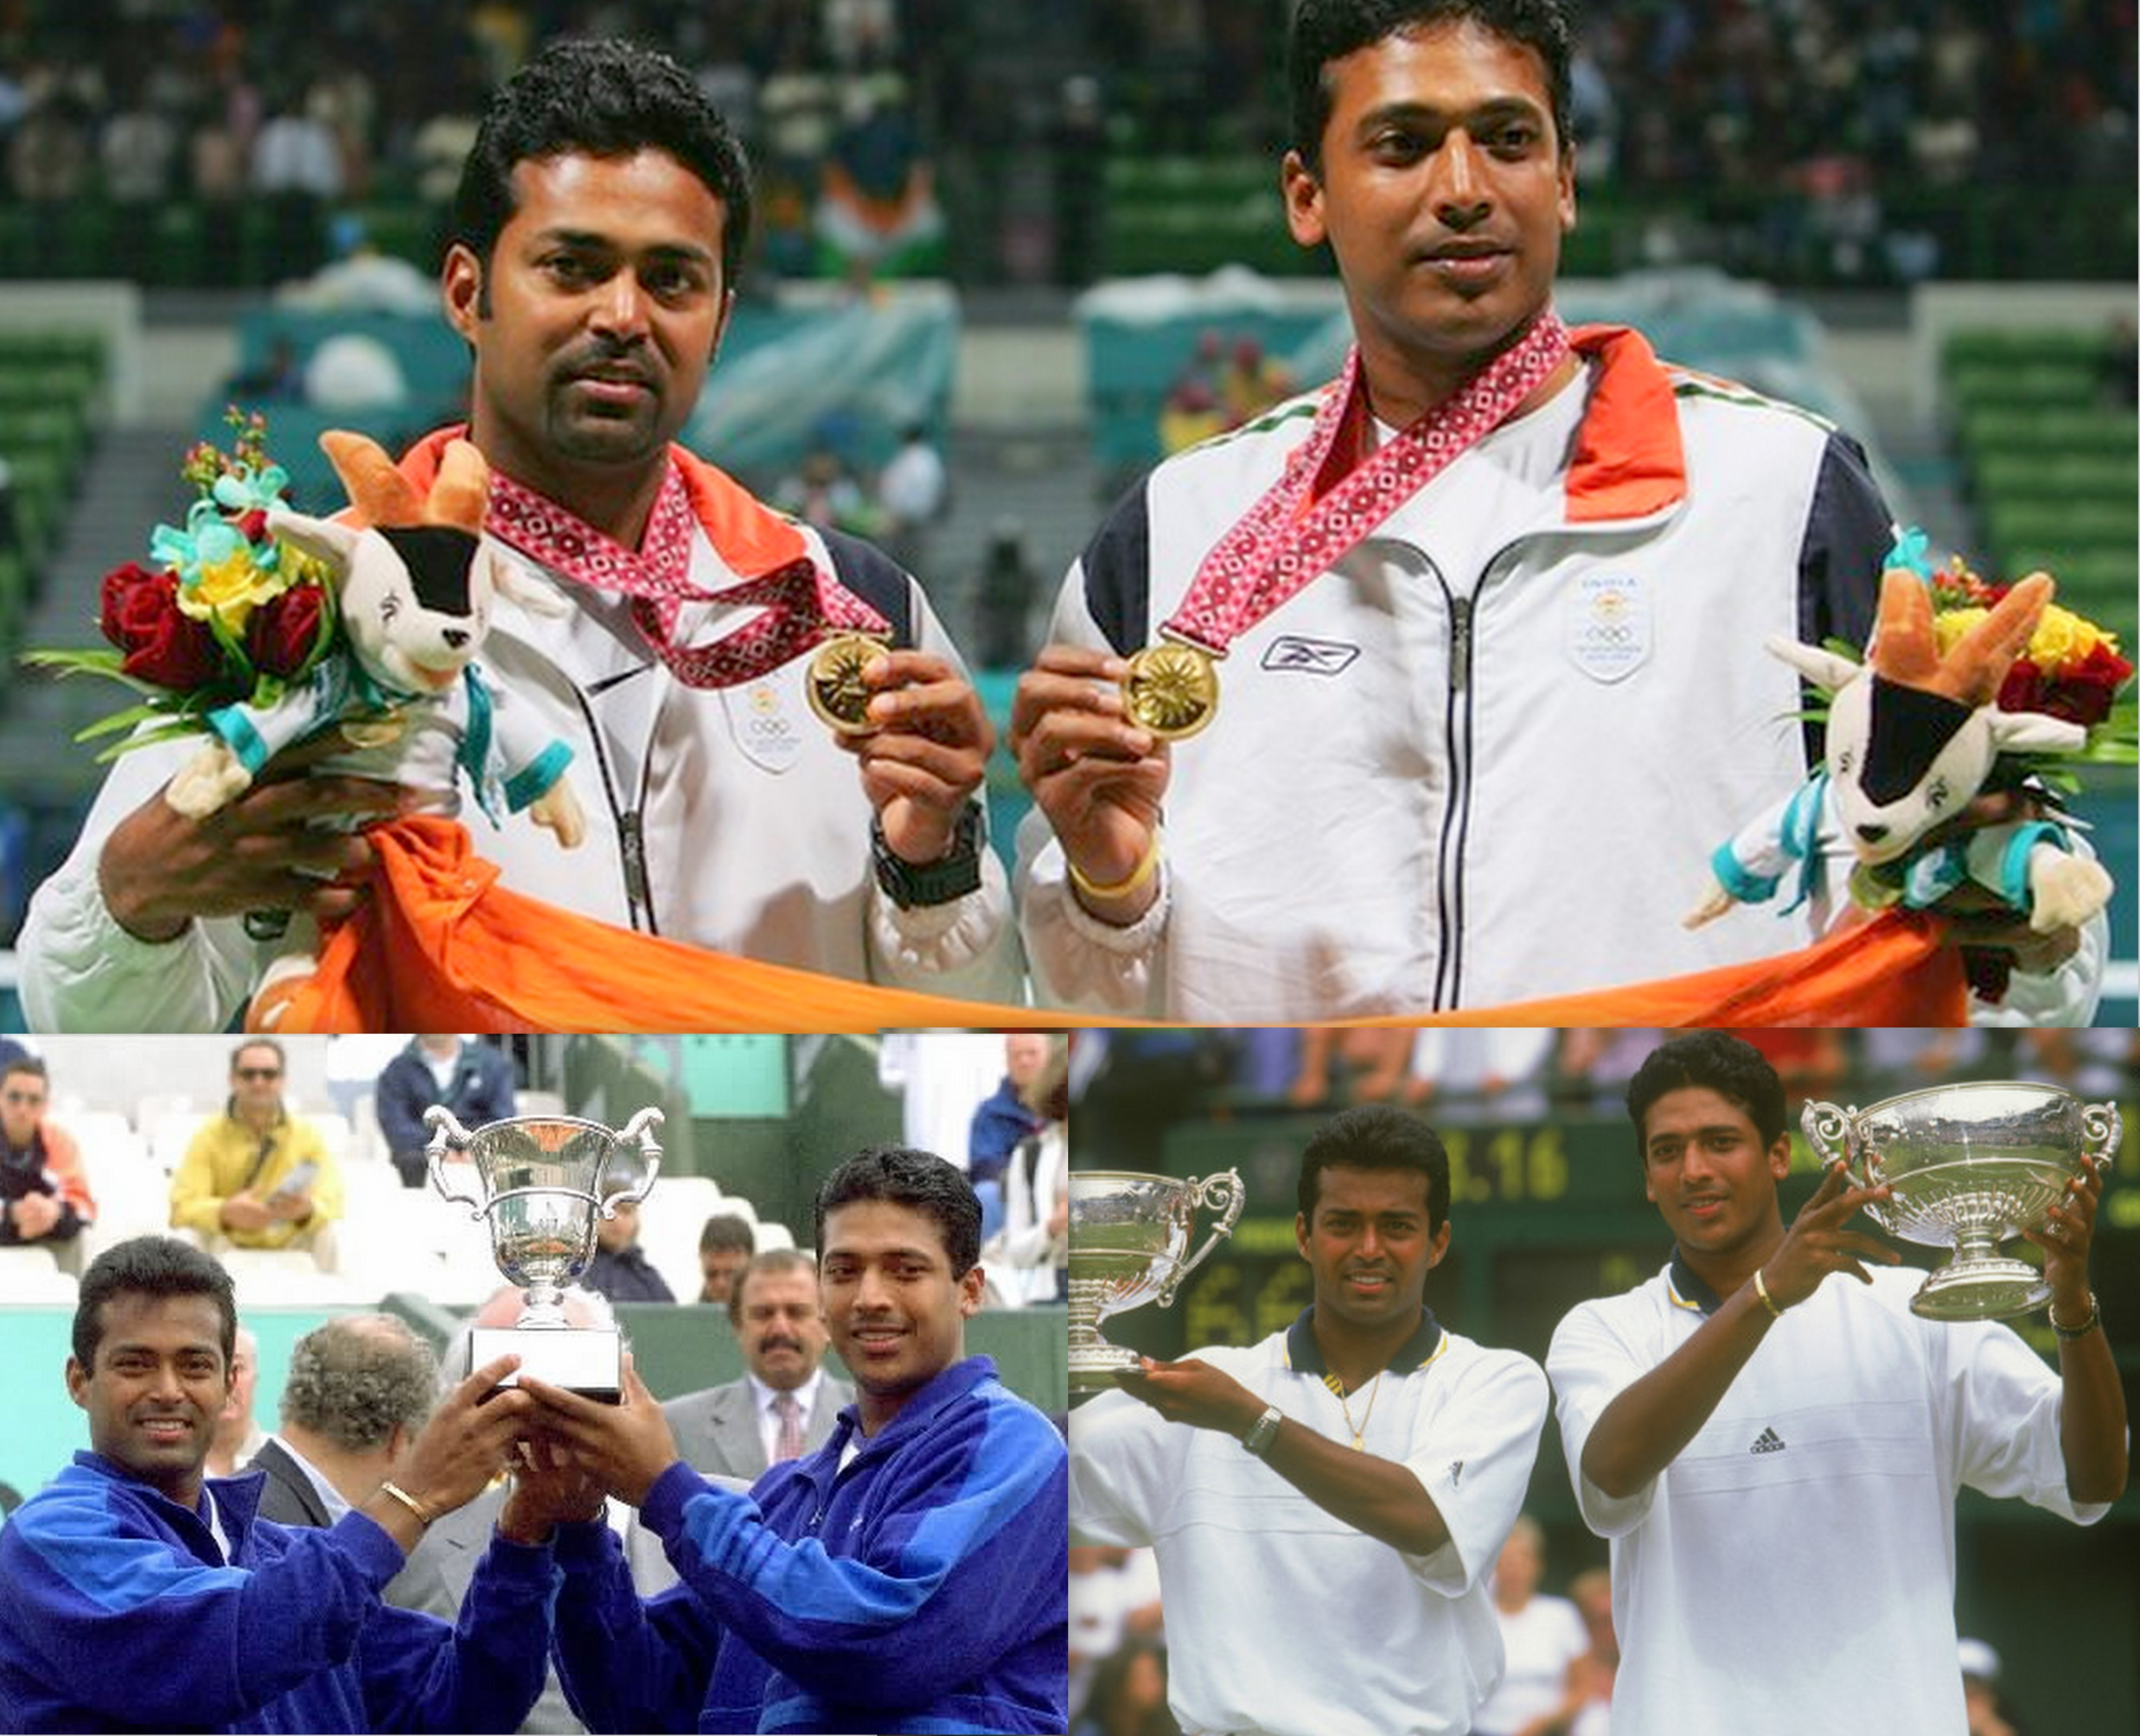 sports achievements in india India's greatest sportspersons msn back to msn home sports web search telling the story of his struggles and achievements or the current crop of players including 2012 olympic bronze medalist saina nehwal made it one of the most sought after sports in india.